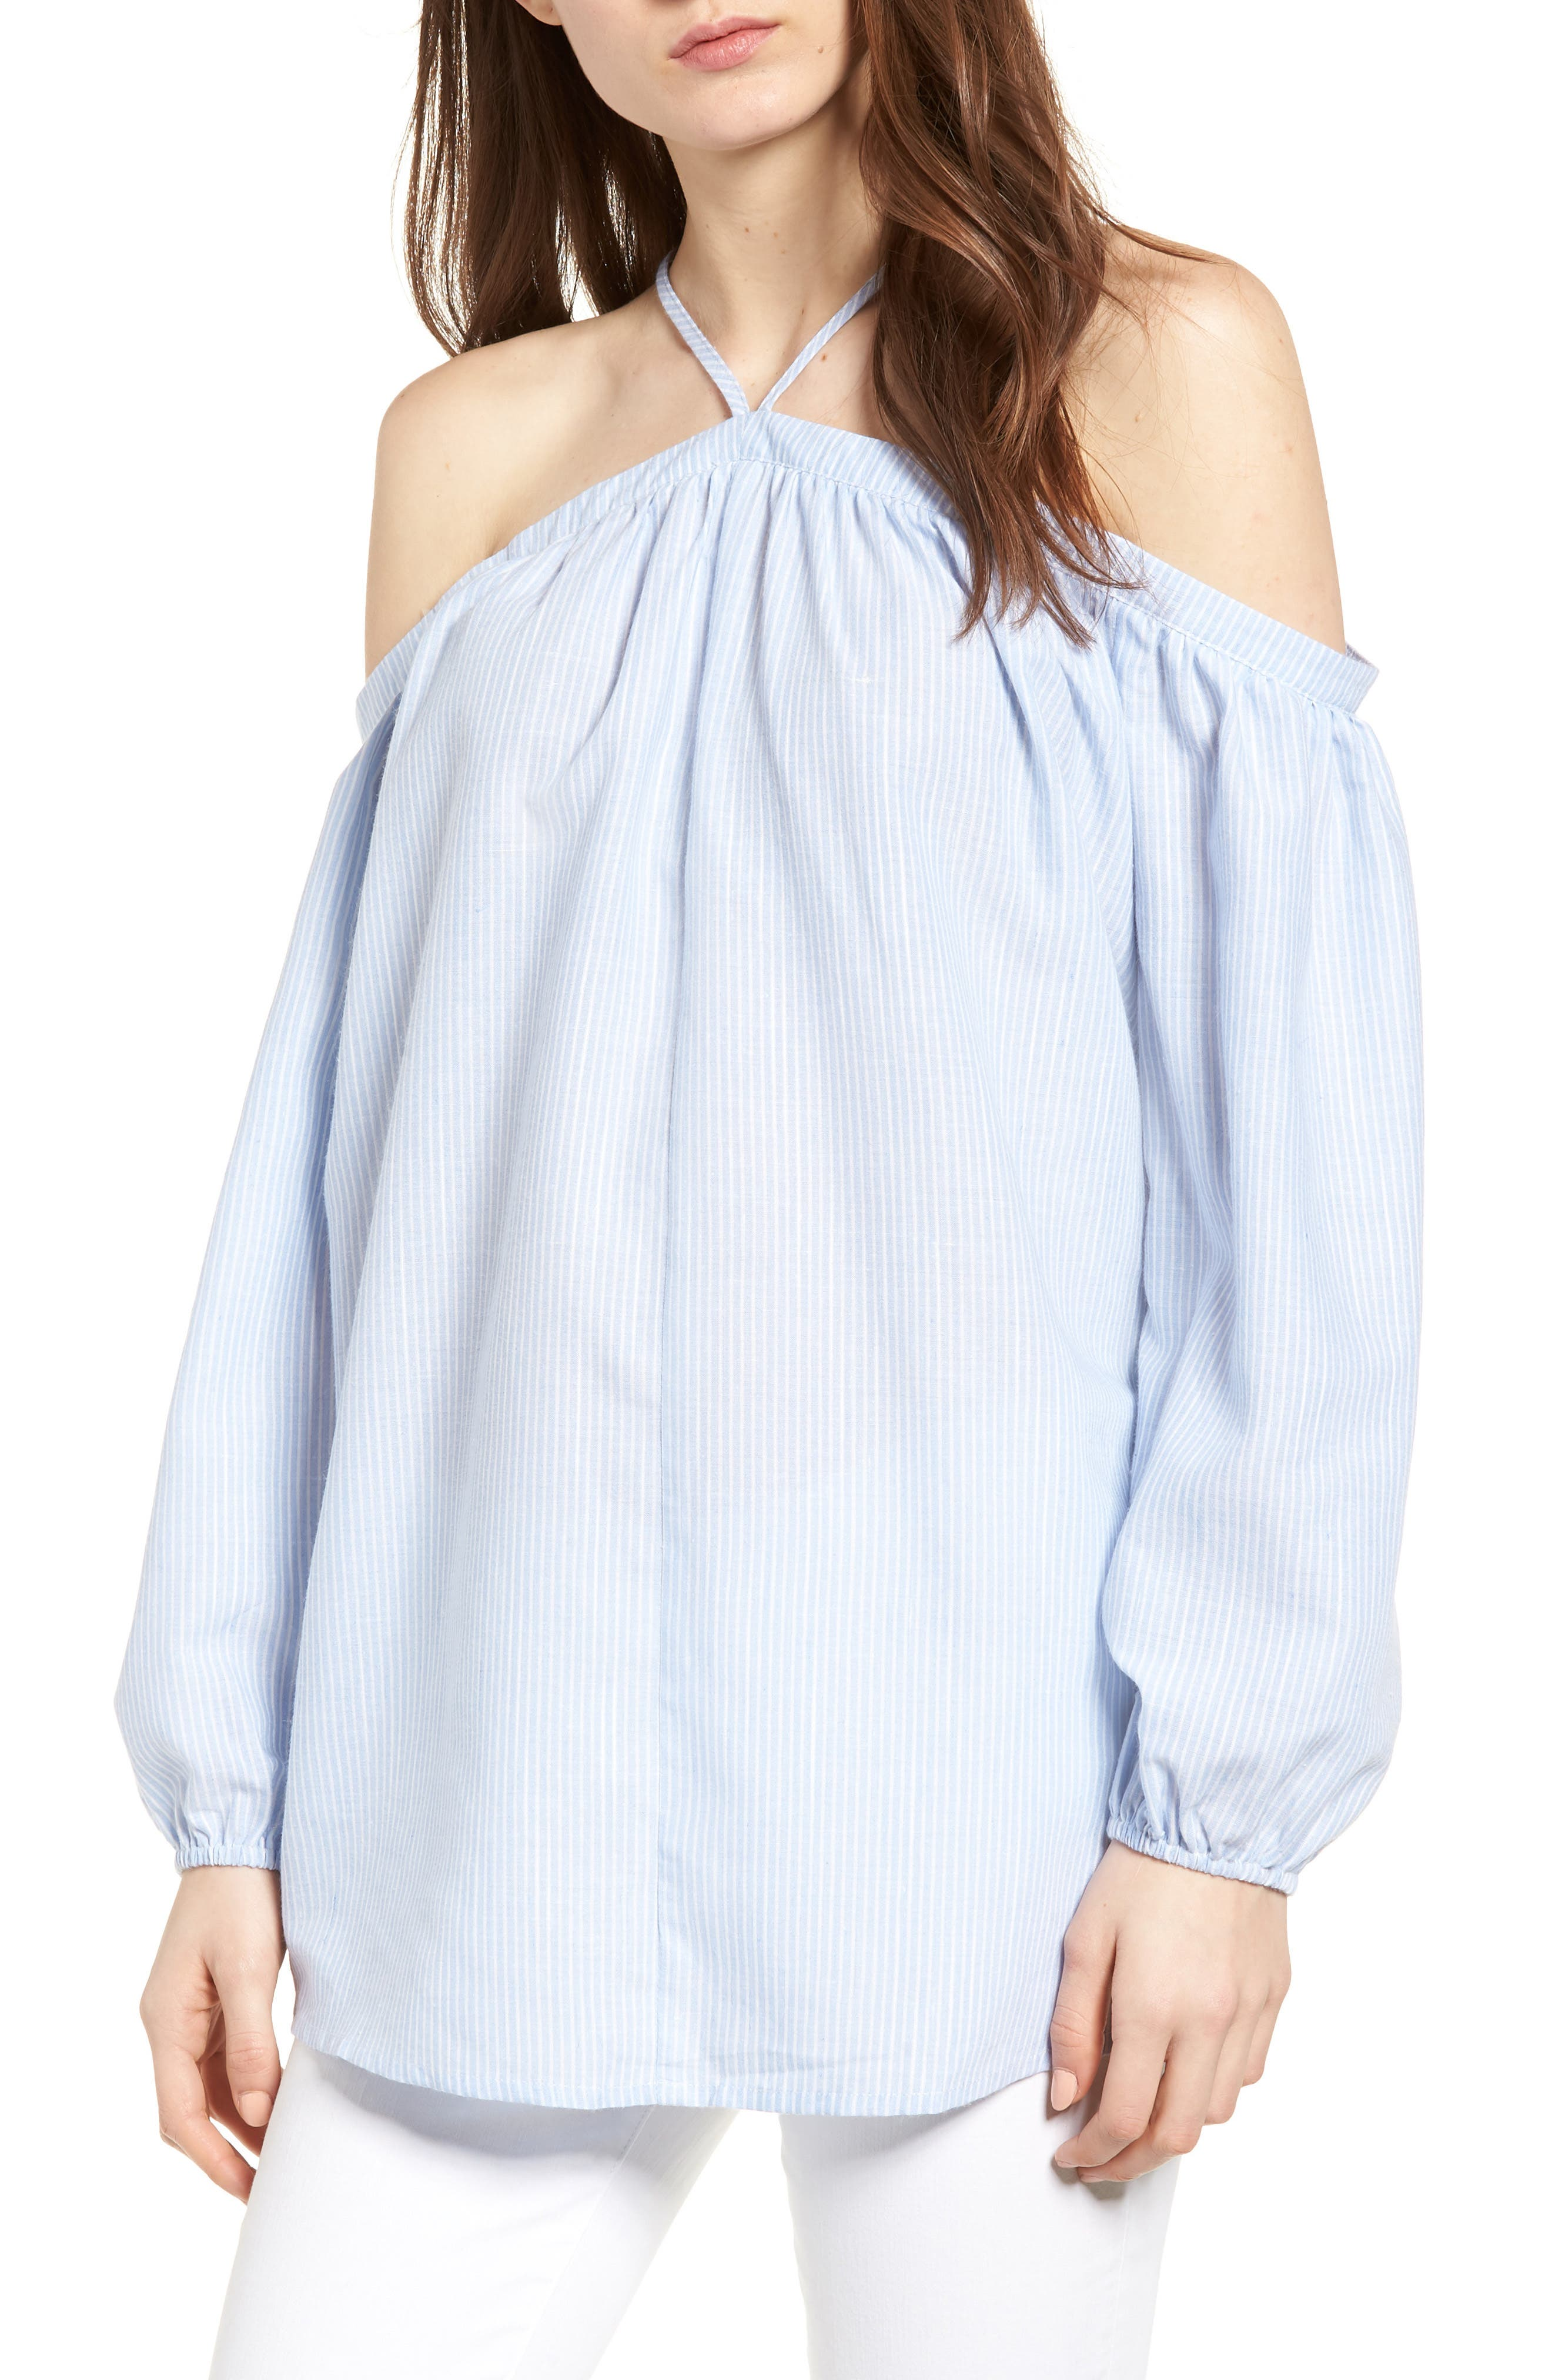 Bishop + Young Ana Stripe Off the Shoulder Top,                             Main thumbnail 1, color,                             Blue White Stripe